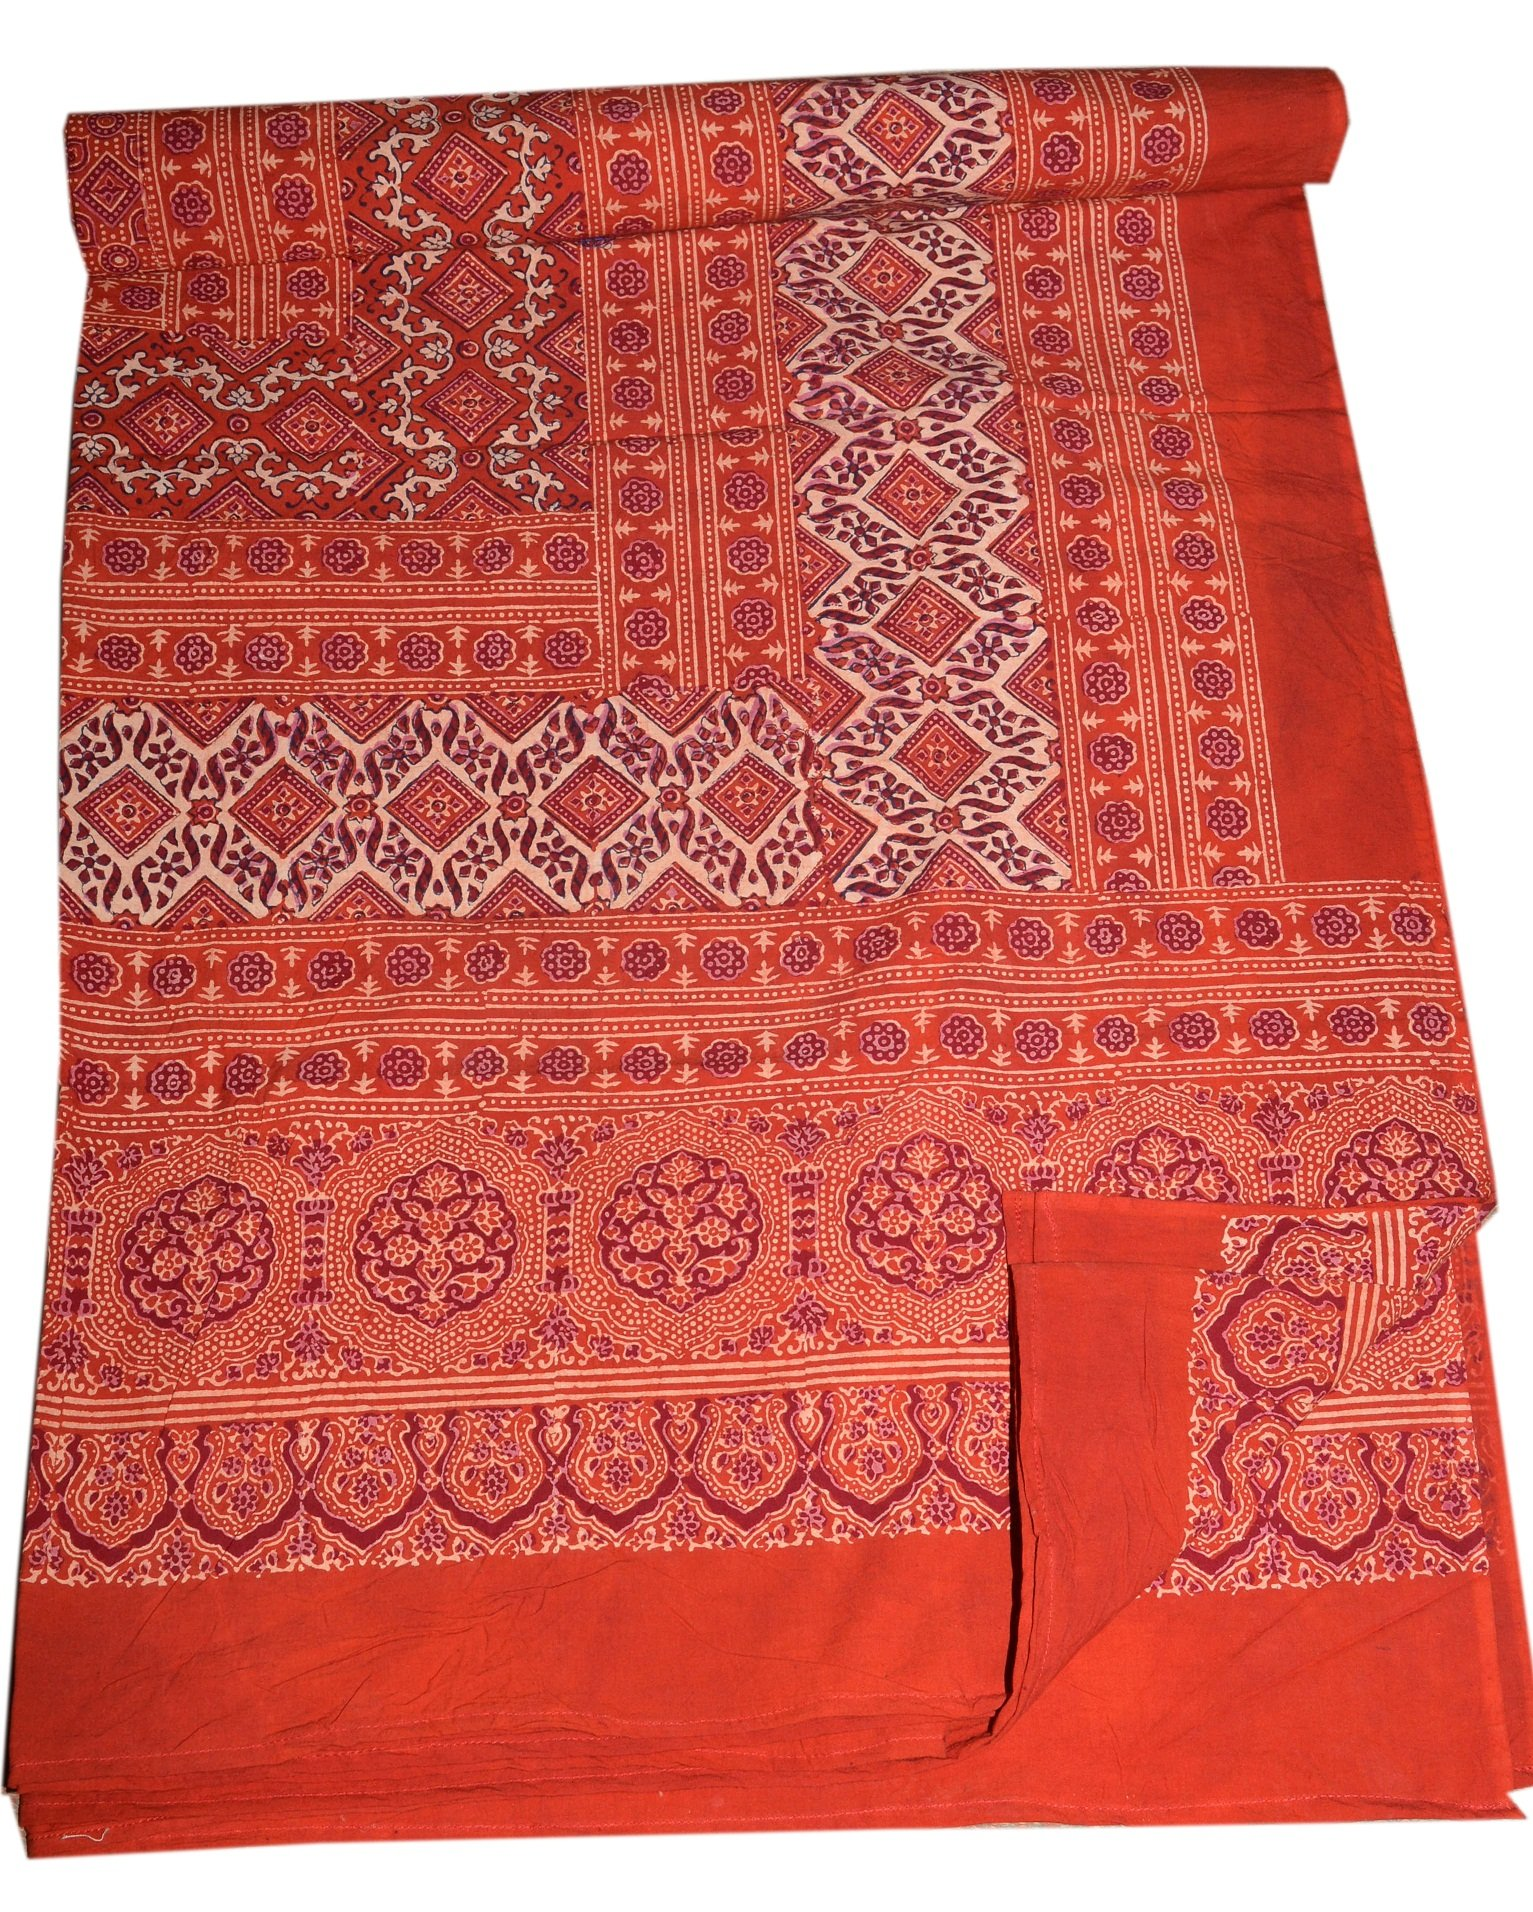 Tribal Asian Textiles Block Print Ajarak Tapestry Cotton India Bed Sheet Linens Couch Throw